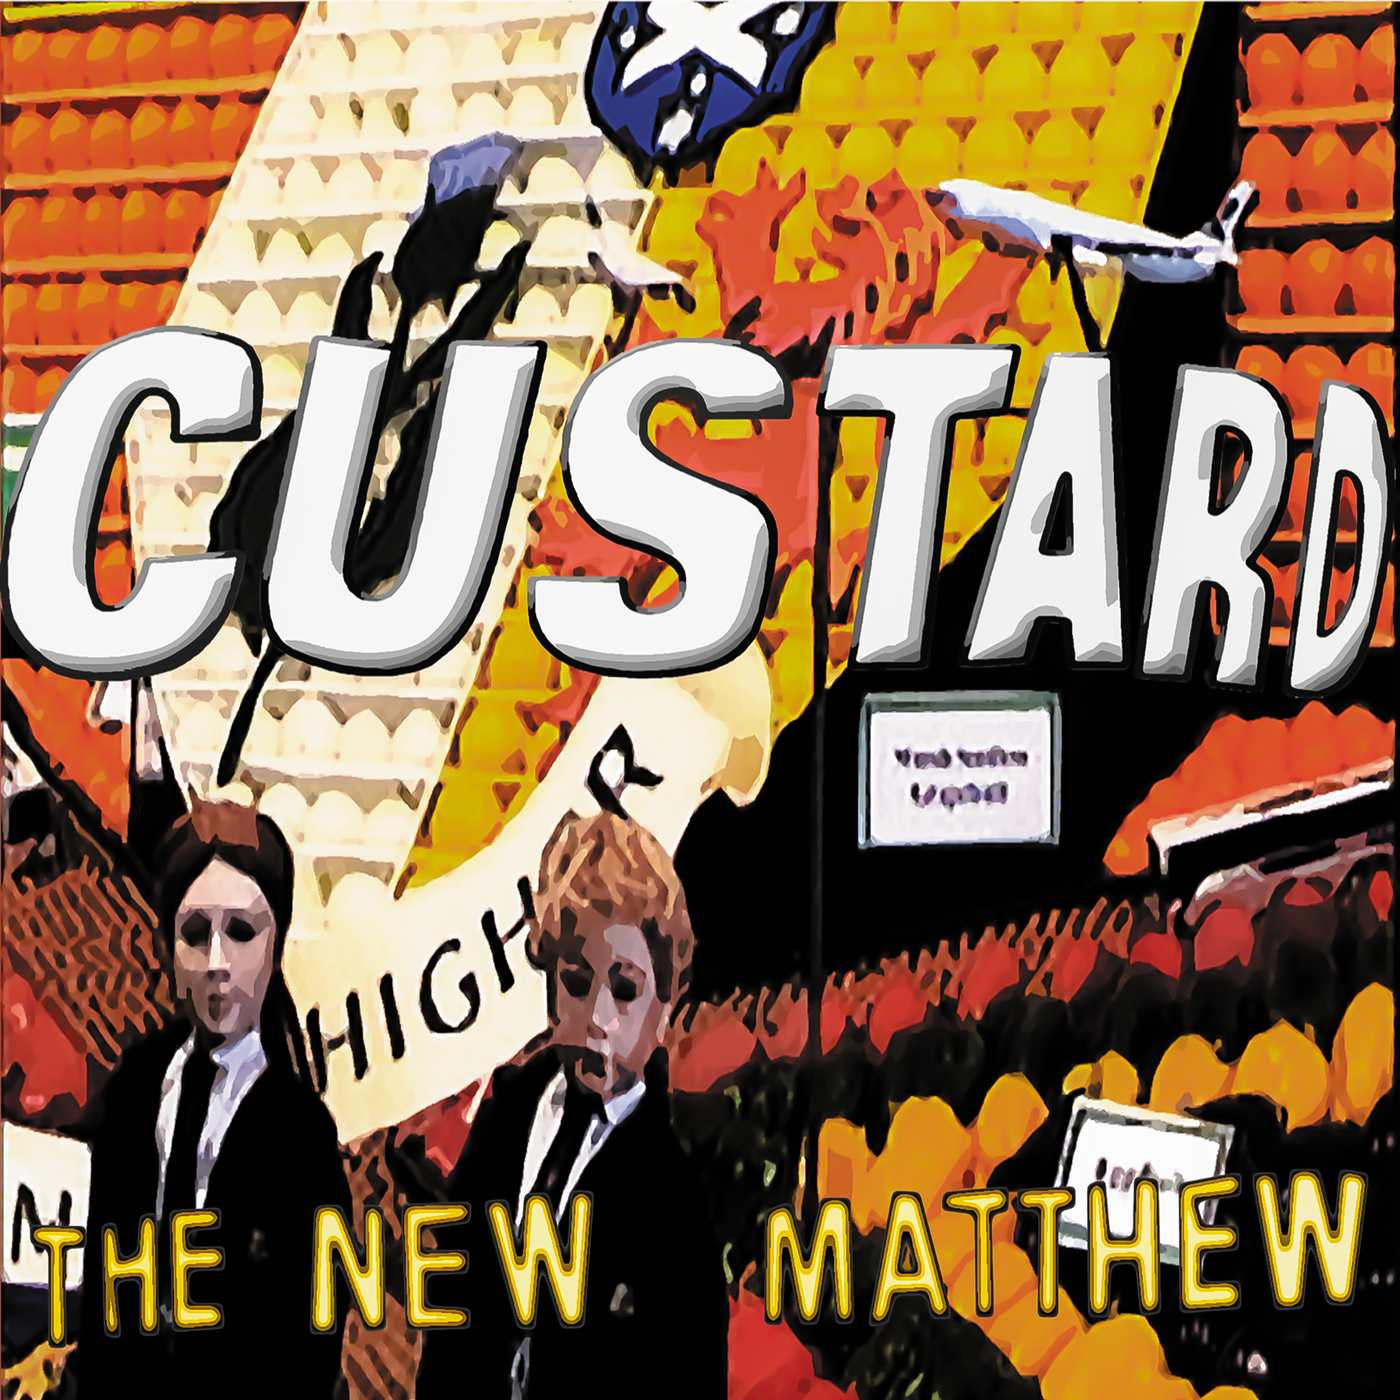 The New Matthew - Custard